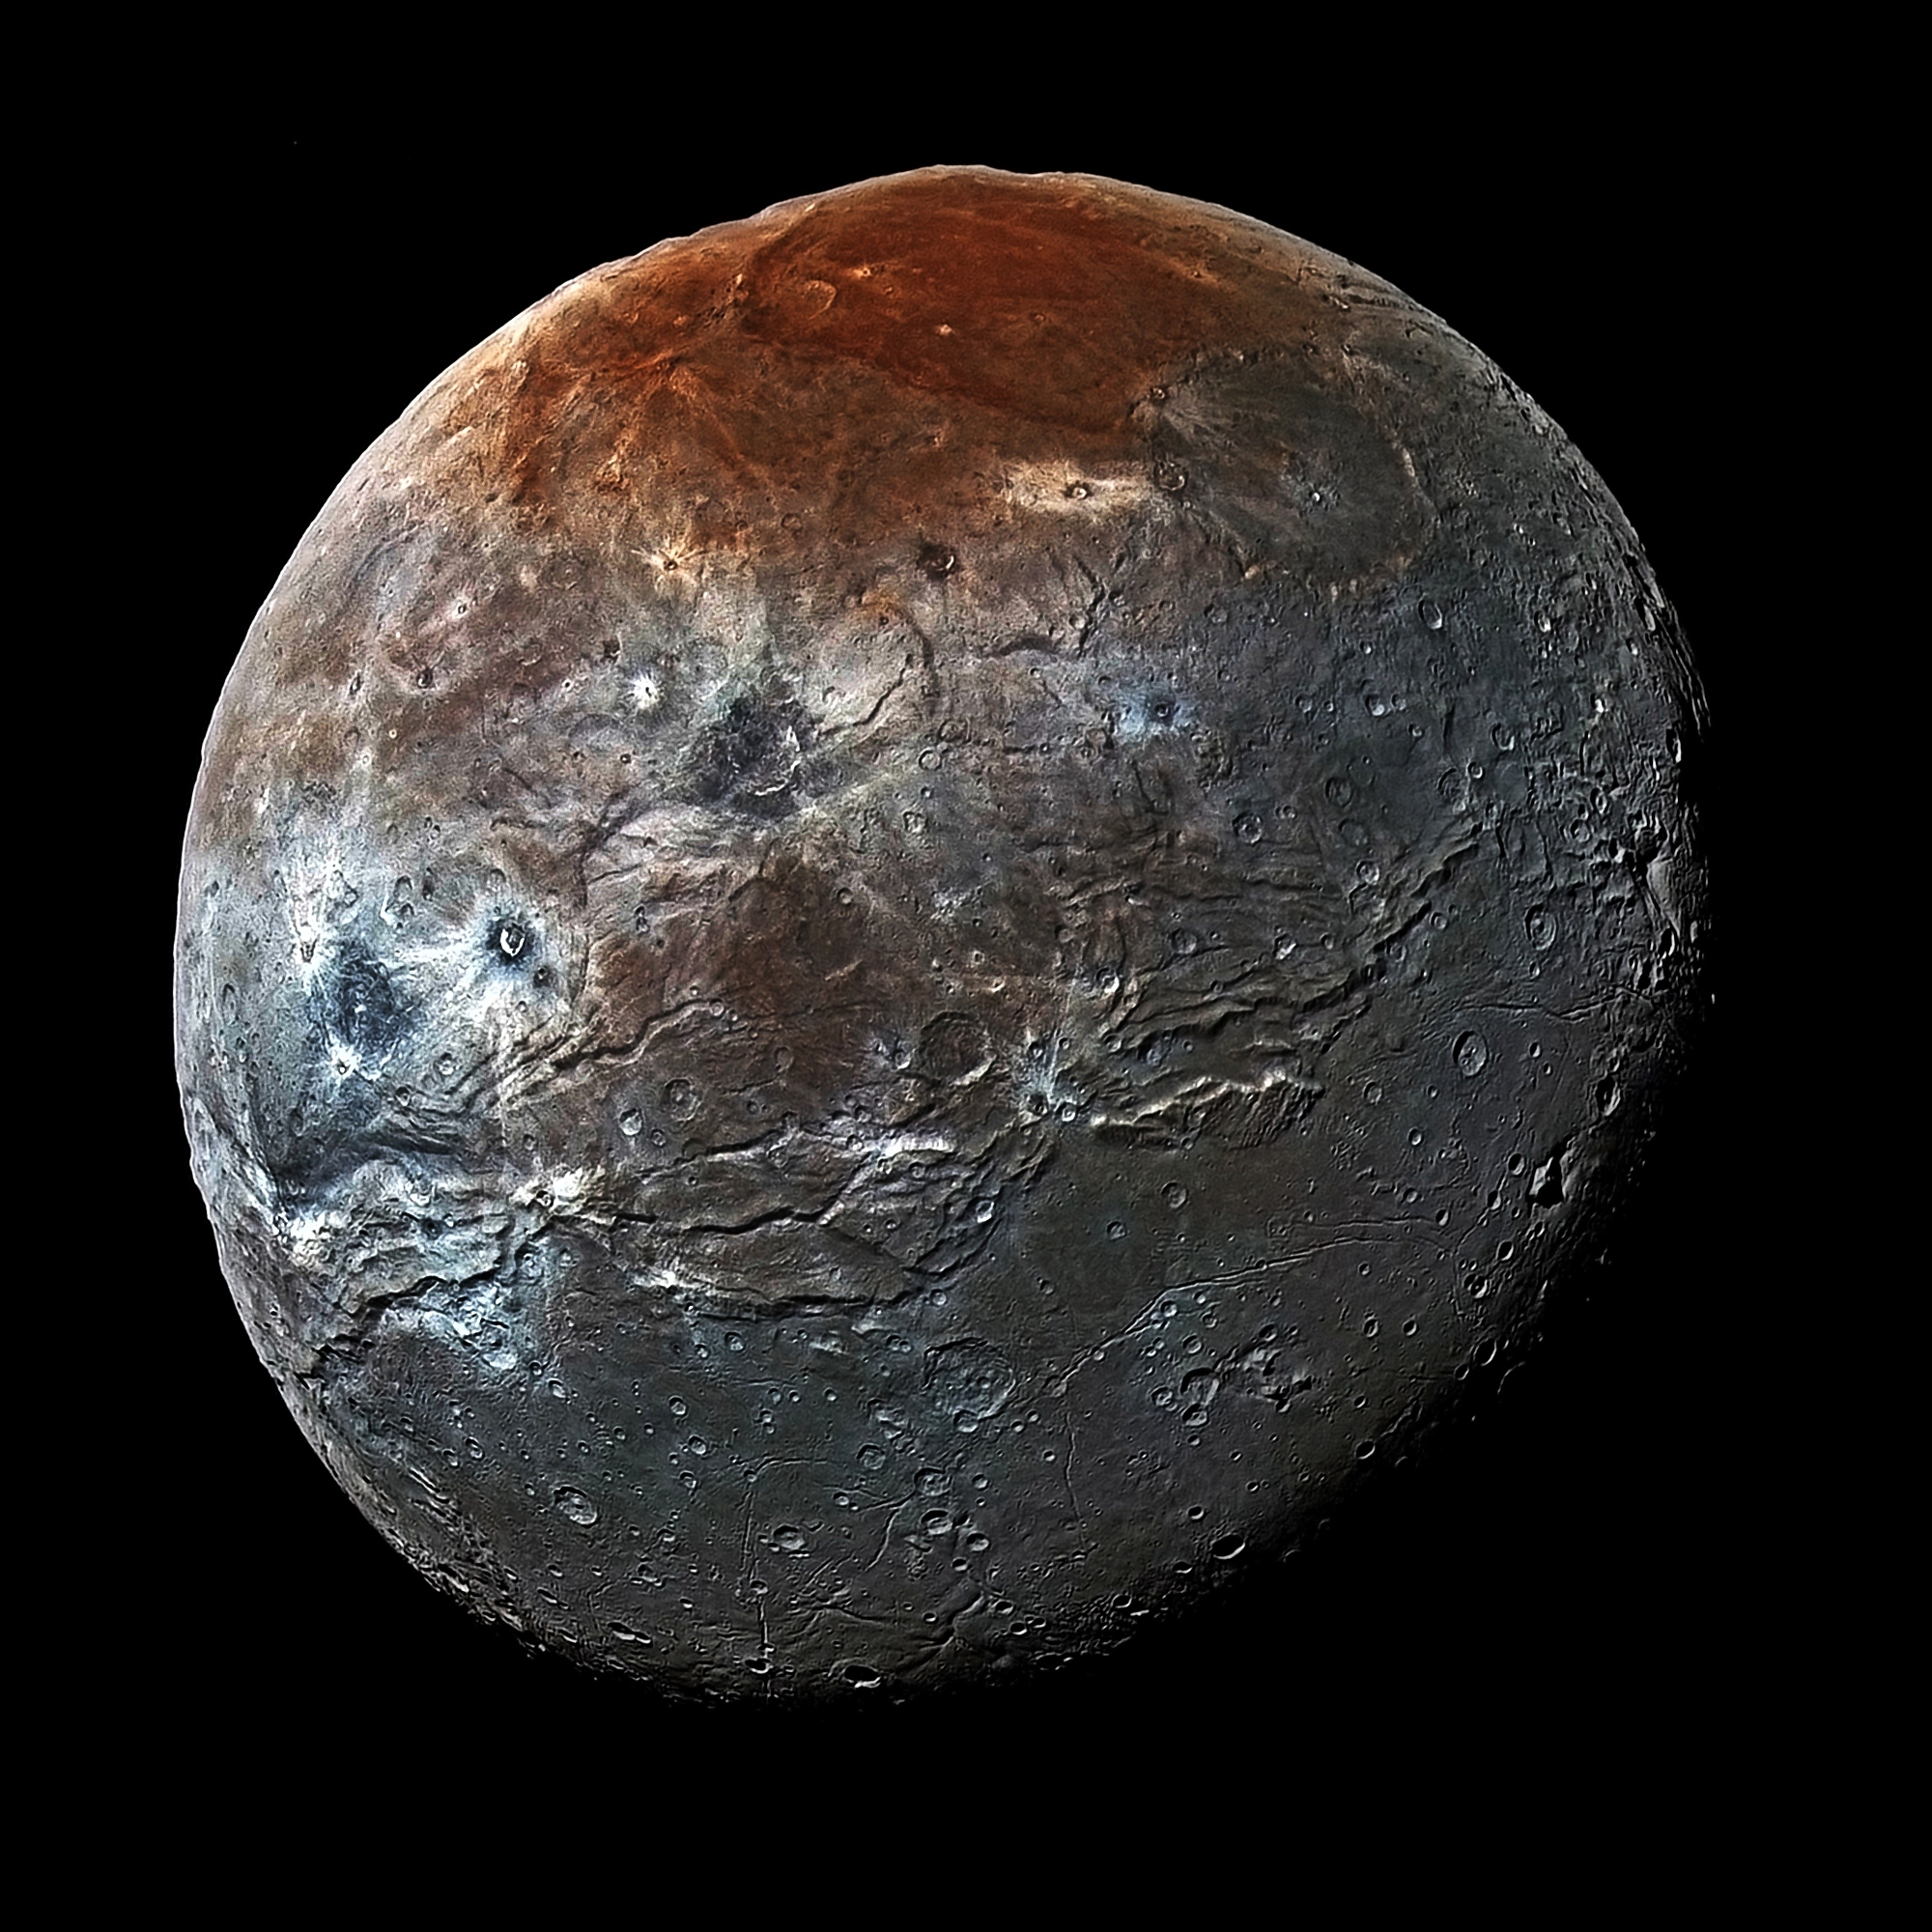 Styx Pluto S Moon: Where Do The Names Of The Planets And Their Moons Come